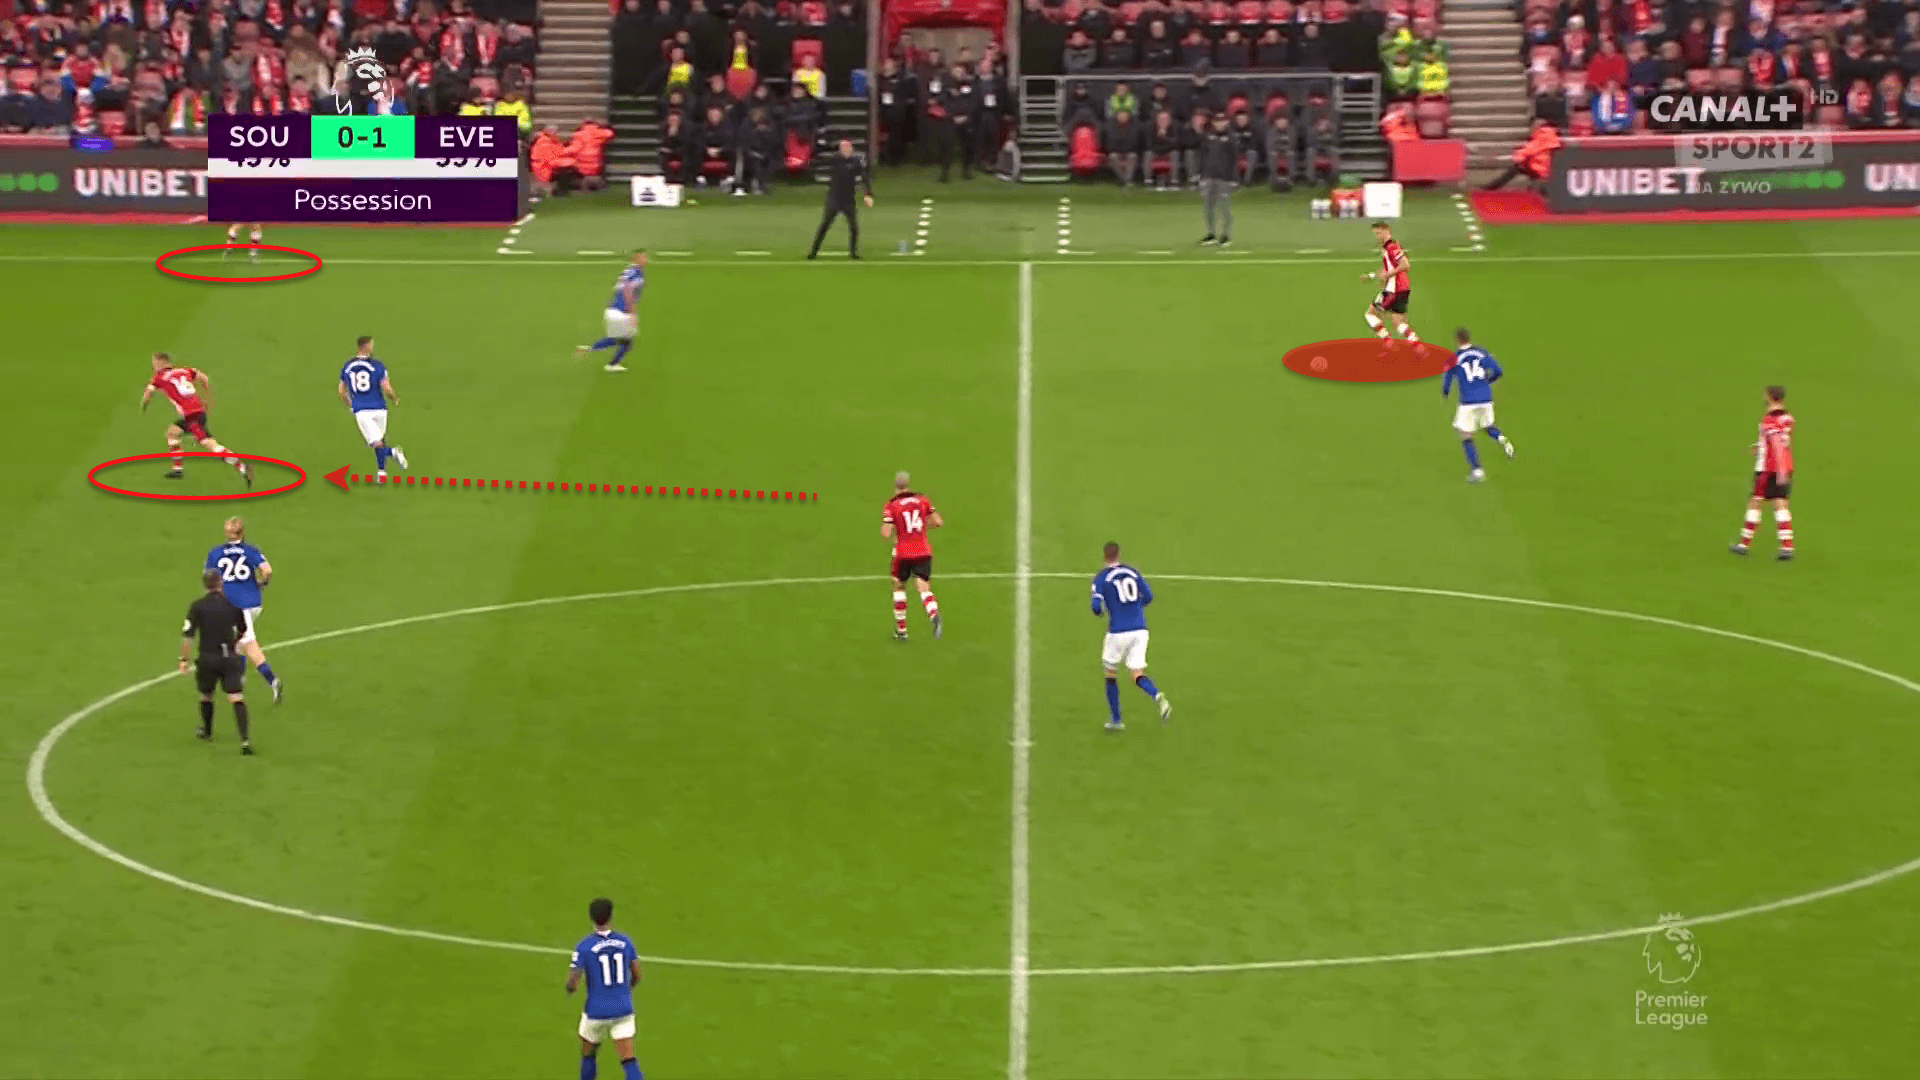 premier-league-2019-20-southampton-vs-everton-tactical-analysis-tactics